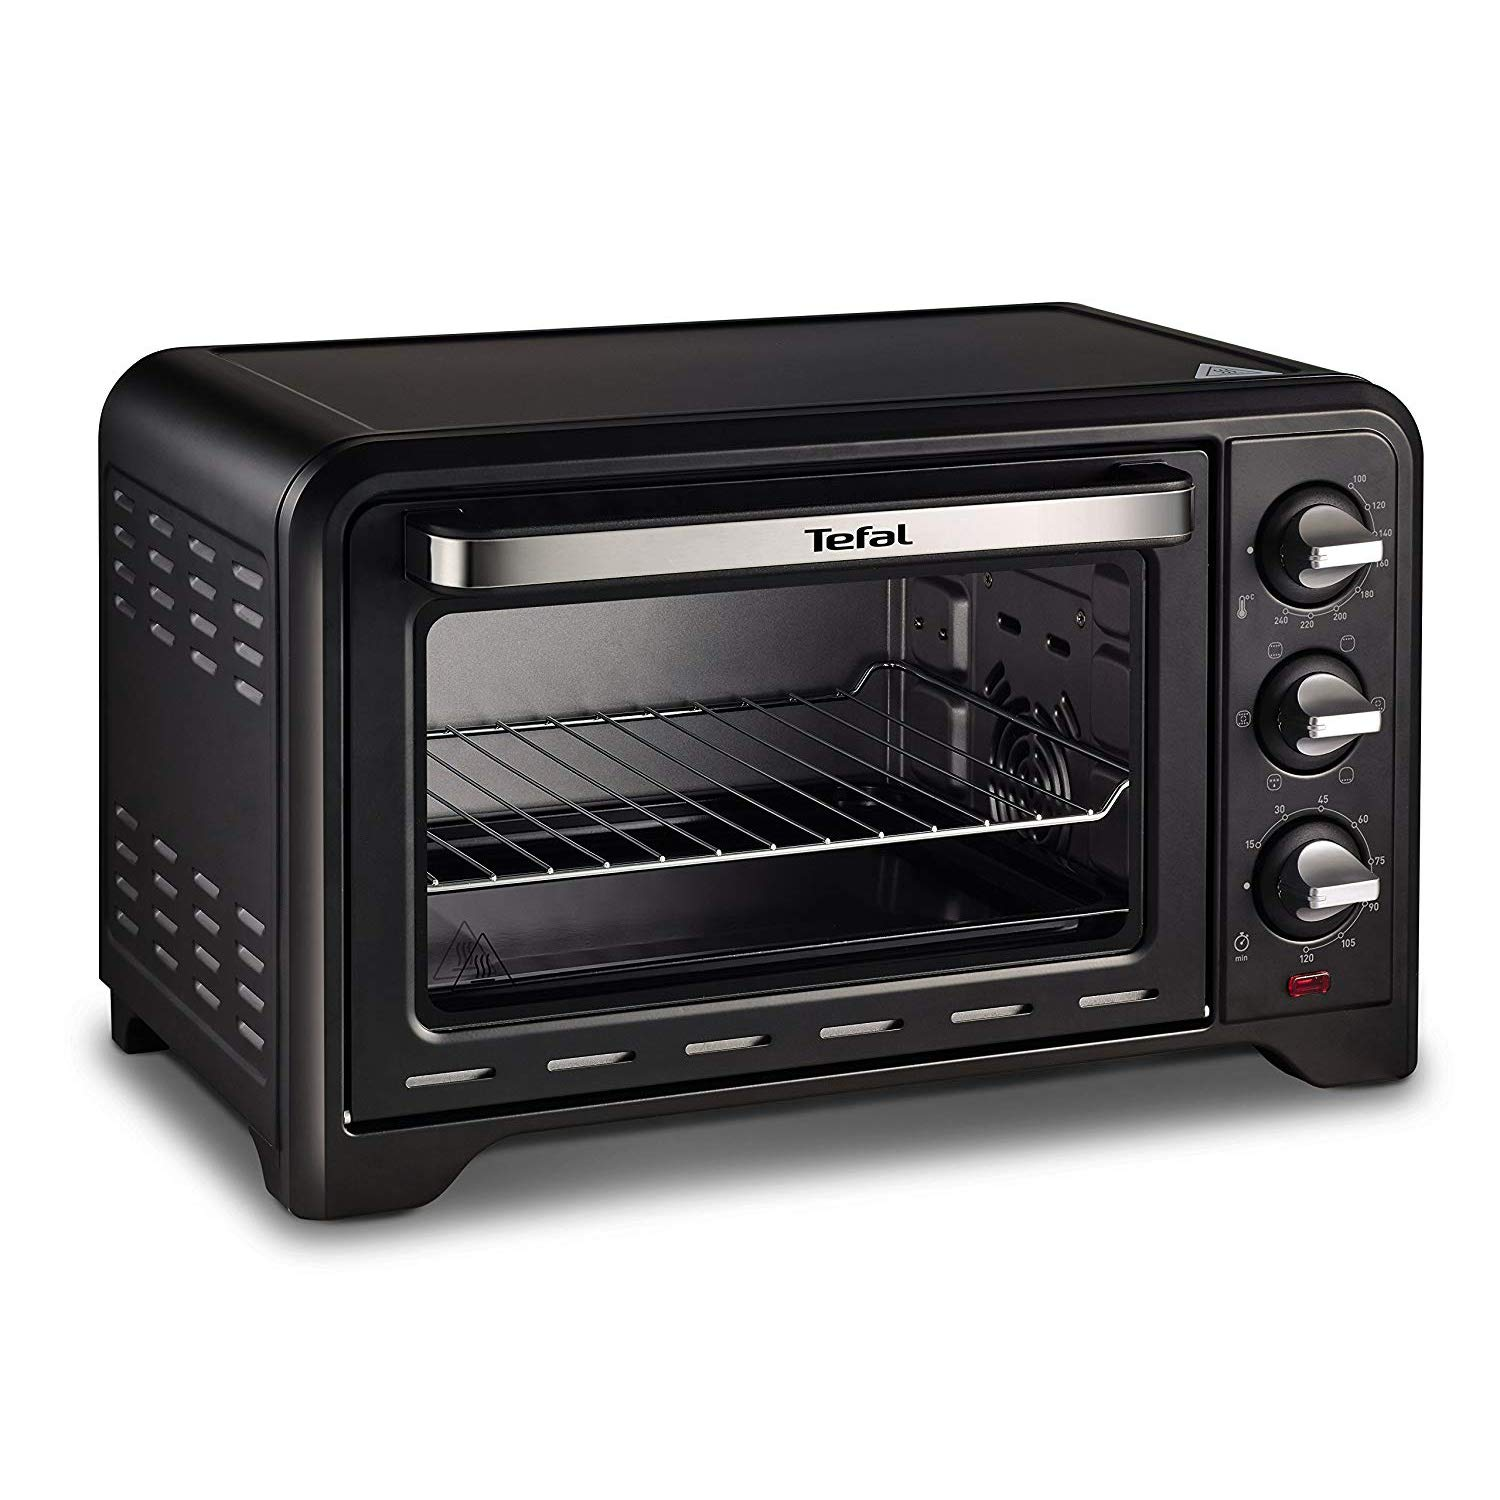 Tefal OF4448 Optimo Electric Toaster Oven 20 Quart Convection Heating 240℃ 120 Min Timer 1380W